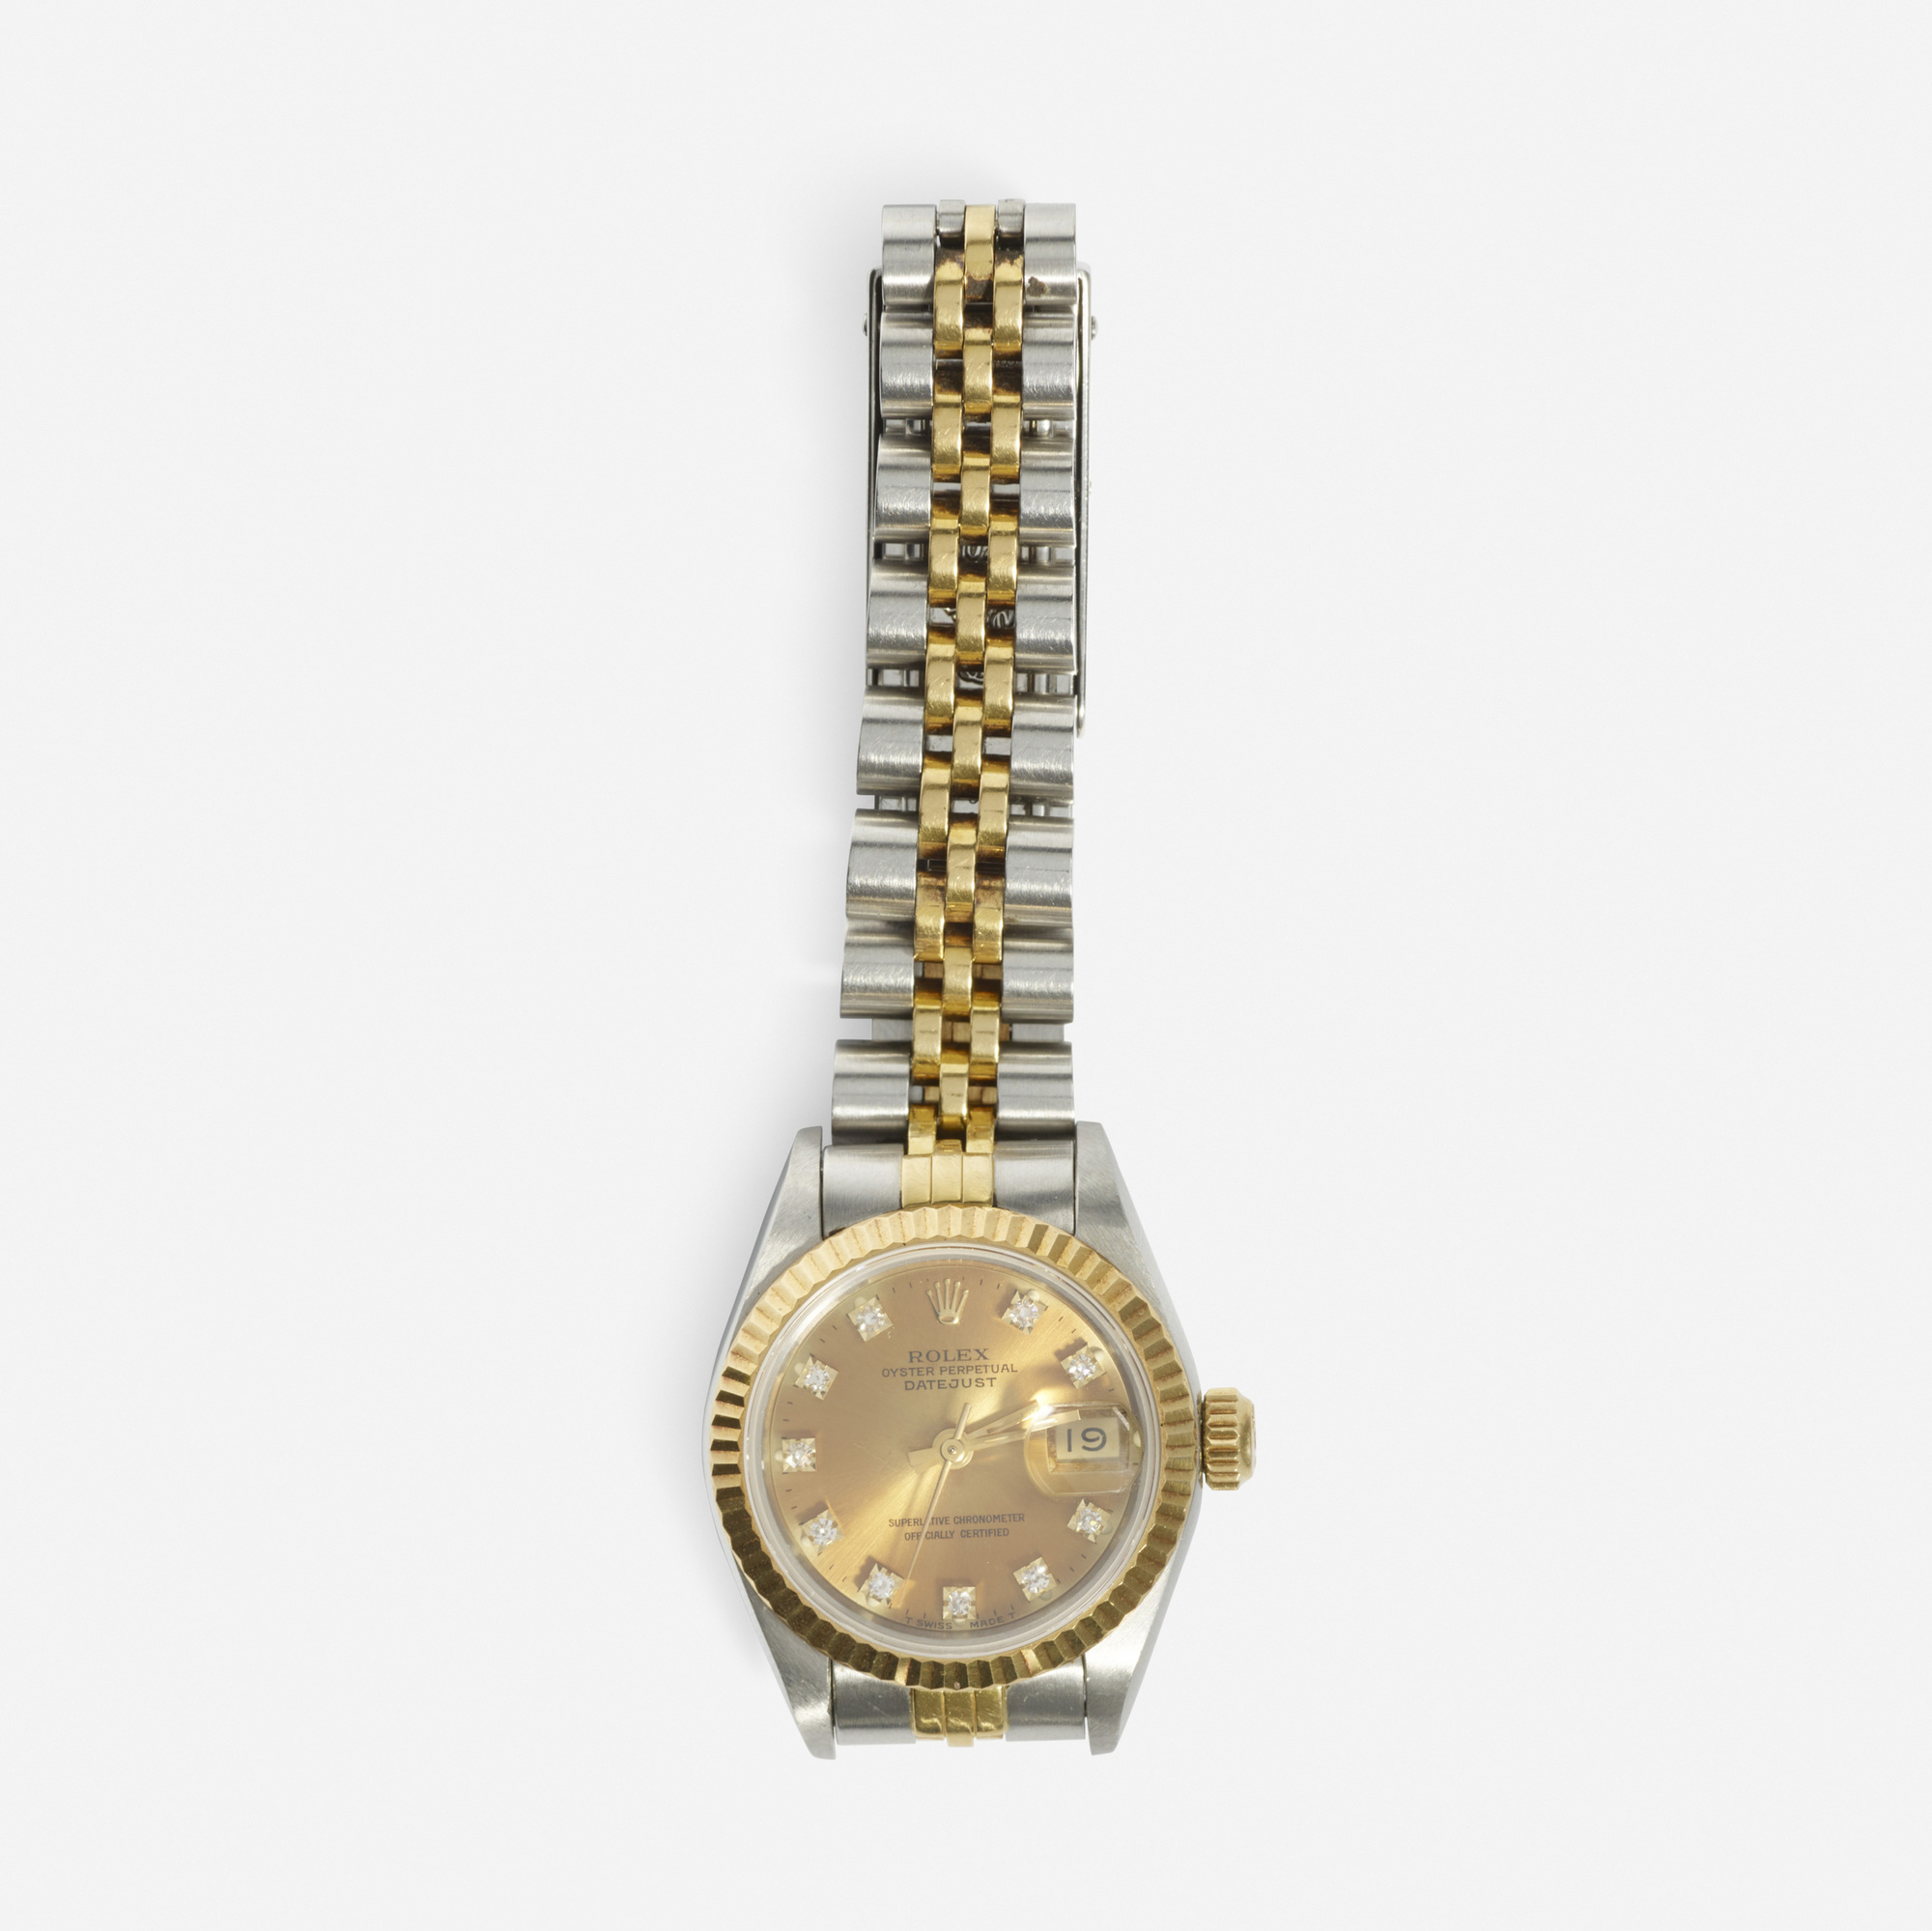 276: Rolex / A gold and diamond ladies Datejust watch (1 of 1)